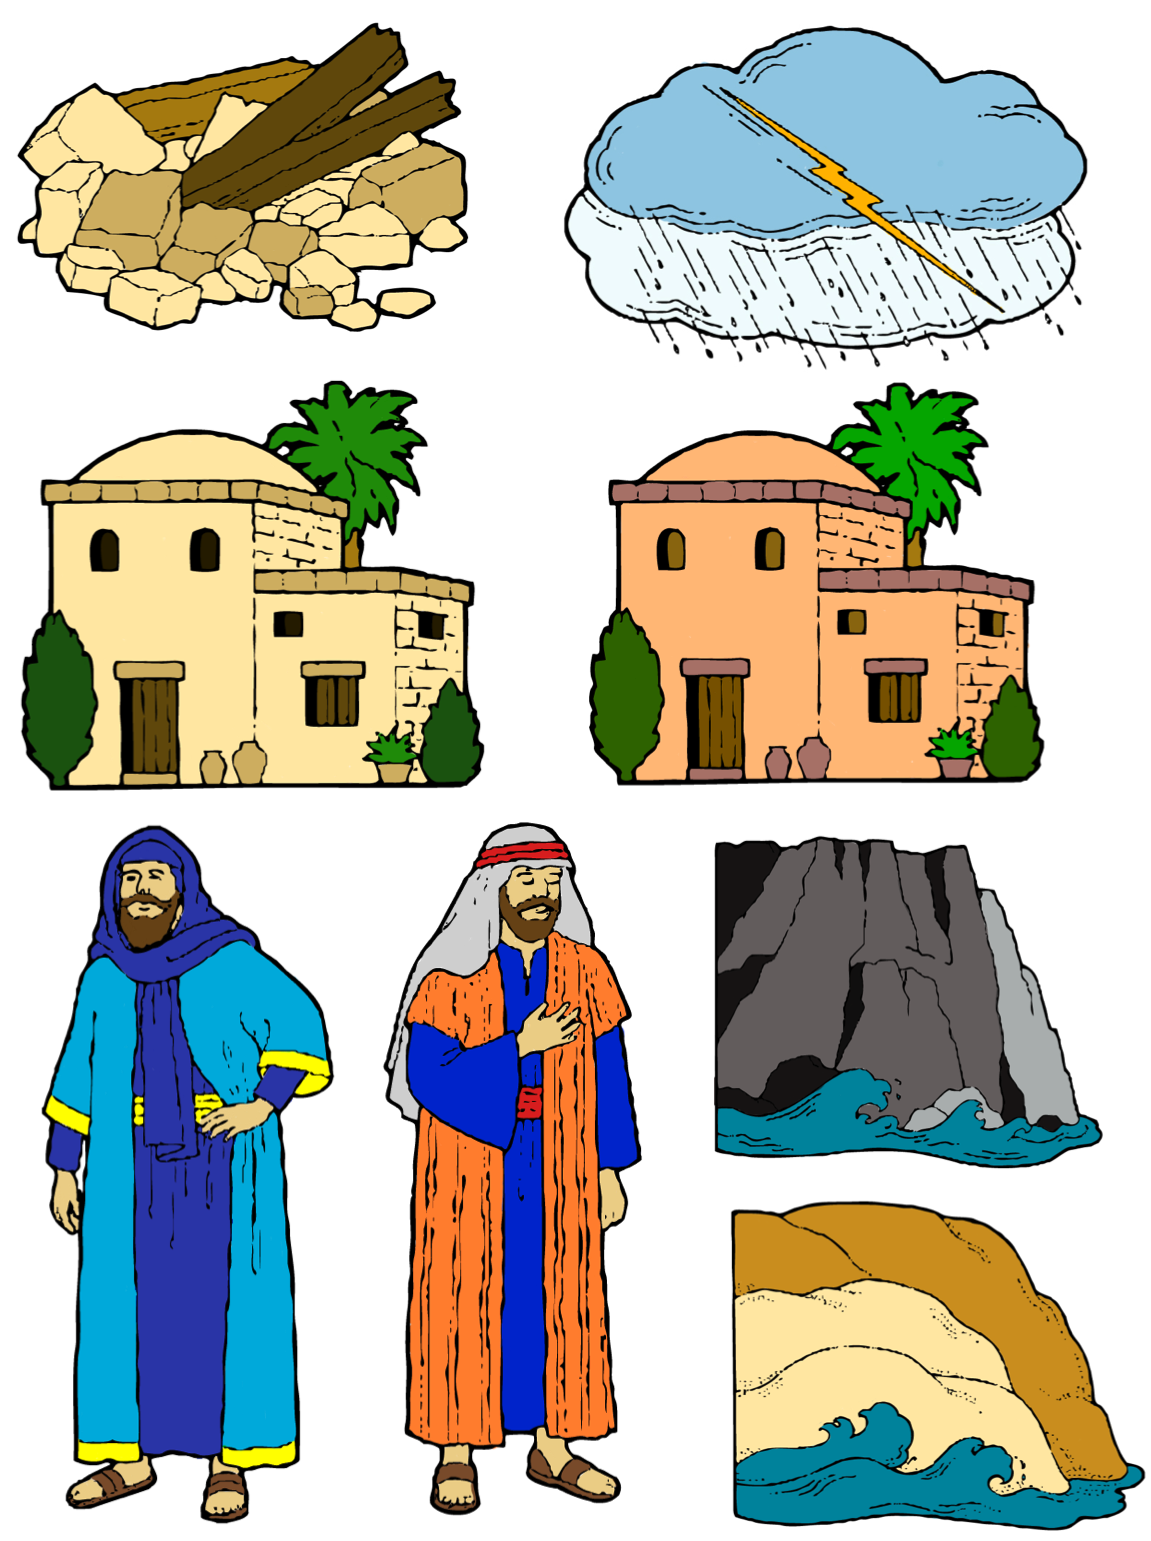 Wise man built his house upon the rock sermon - Wise Man And Foolish Man Story Figures